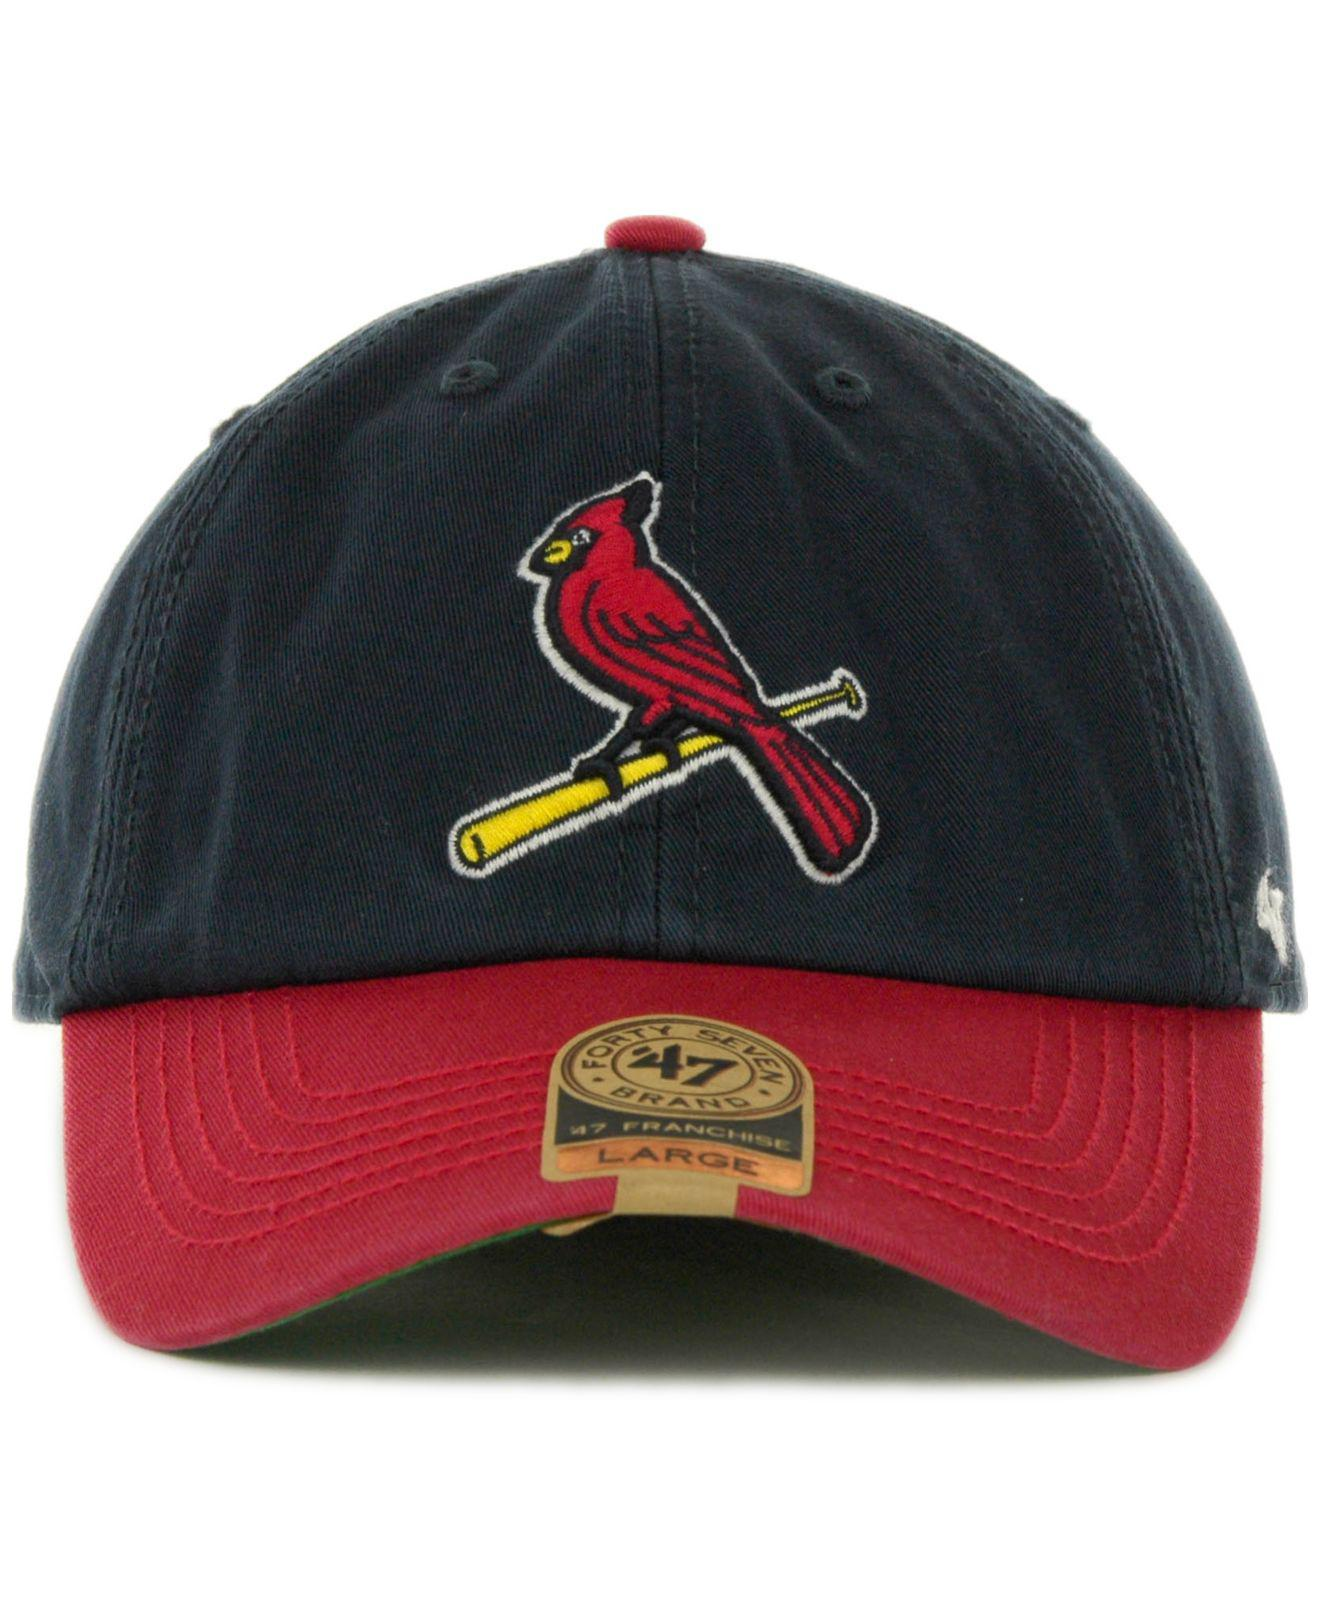 efe5ccdee62e1 ... new style lyst 47 brand st. louis cardinals franchise cap in blue for  men 6ff47